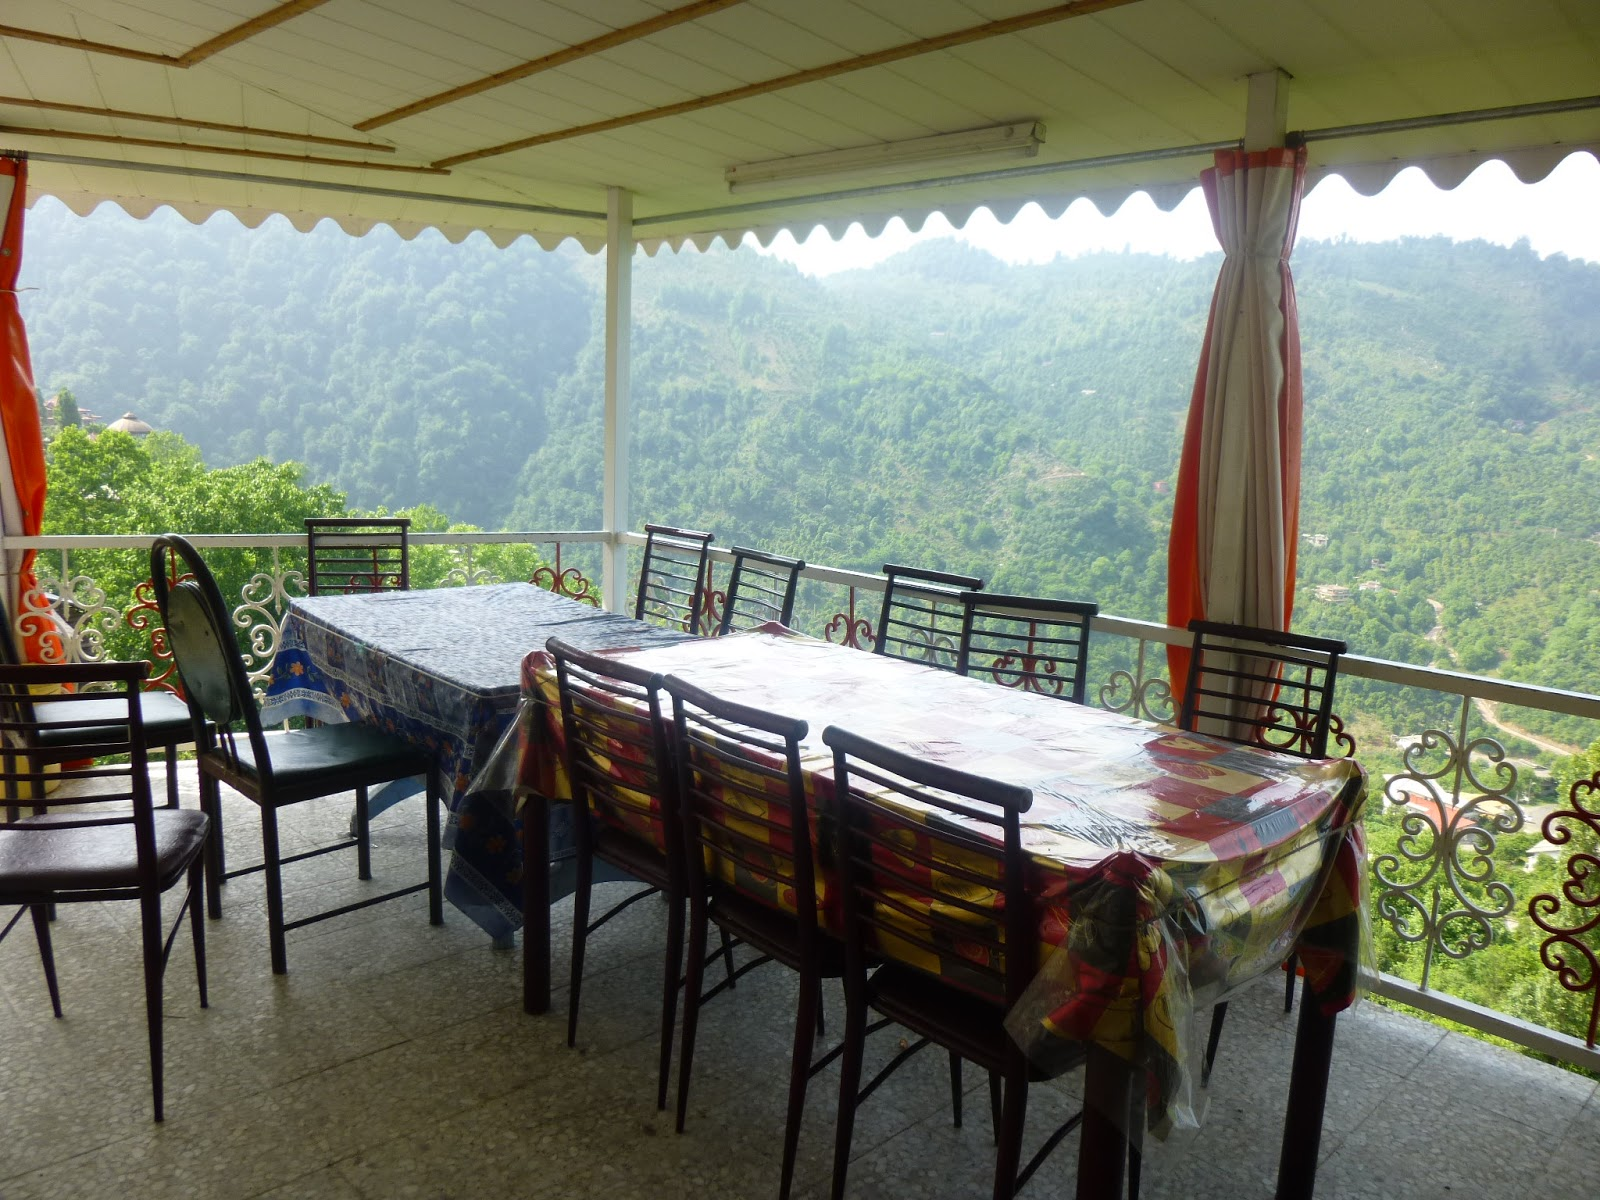 Novel Adventurers: Home Cooking in Gilan\'s Misty Mountains